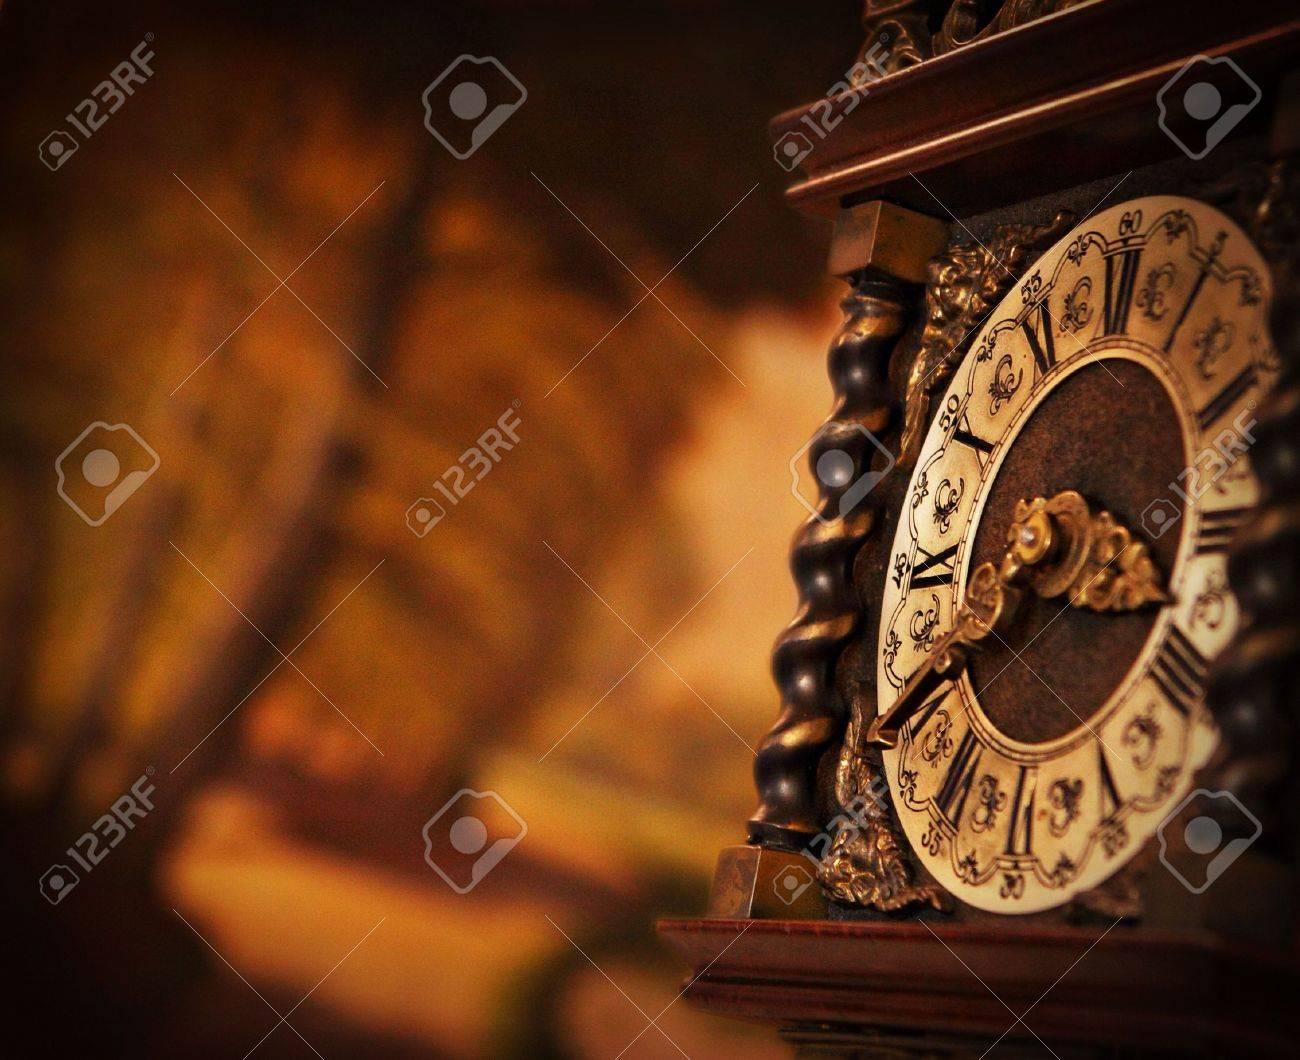 Antique Wall Clock Stock Images, Royalty-Free Images &amp- Vectors ...